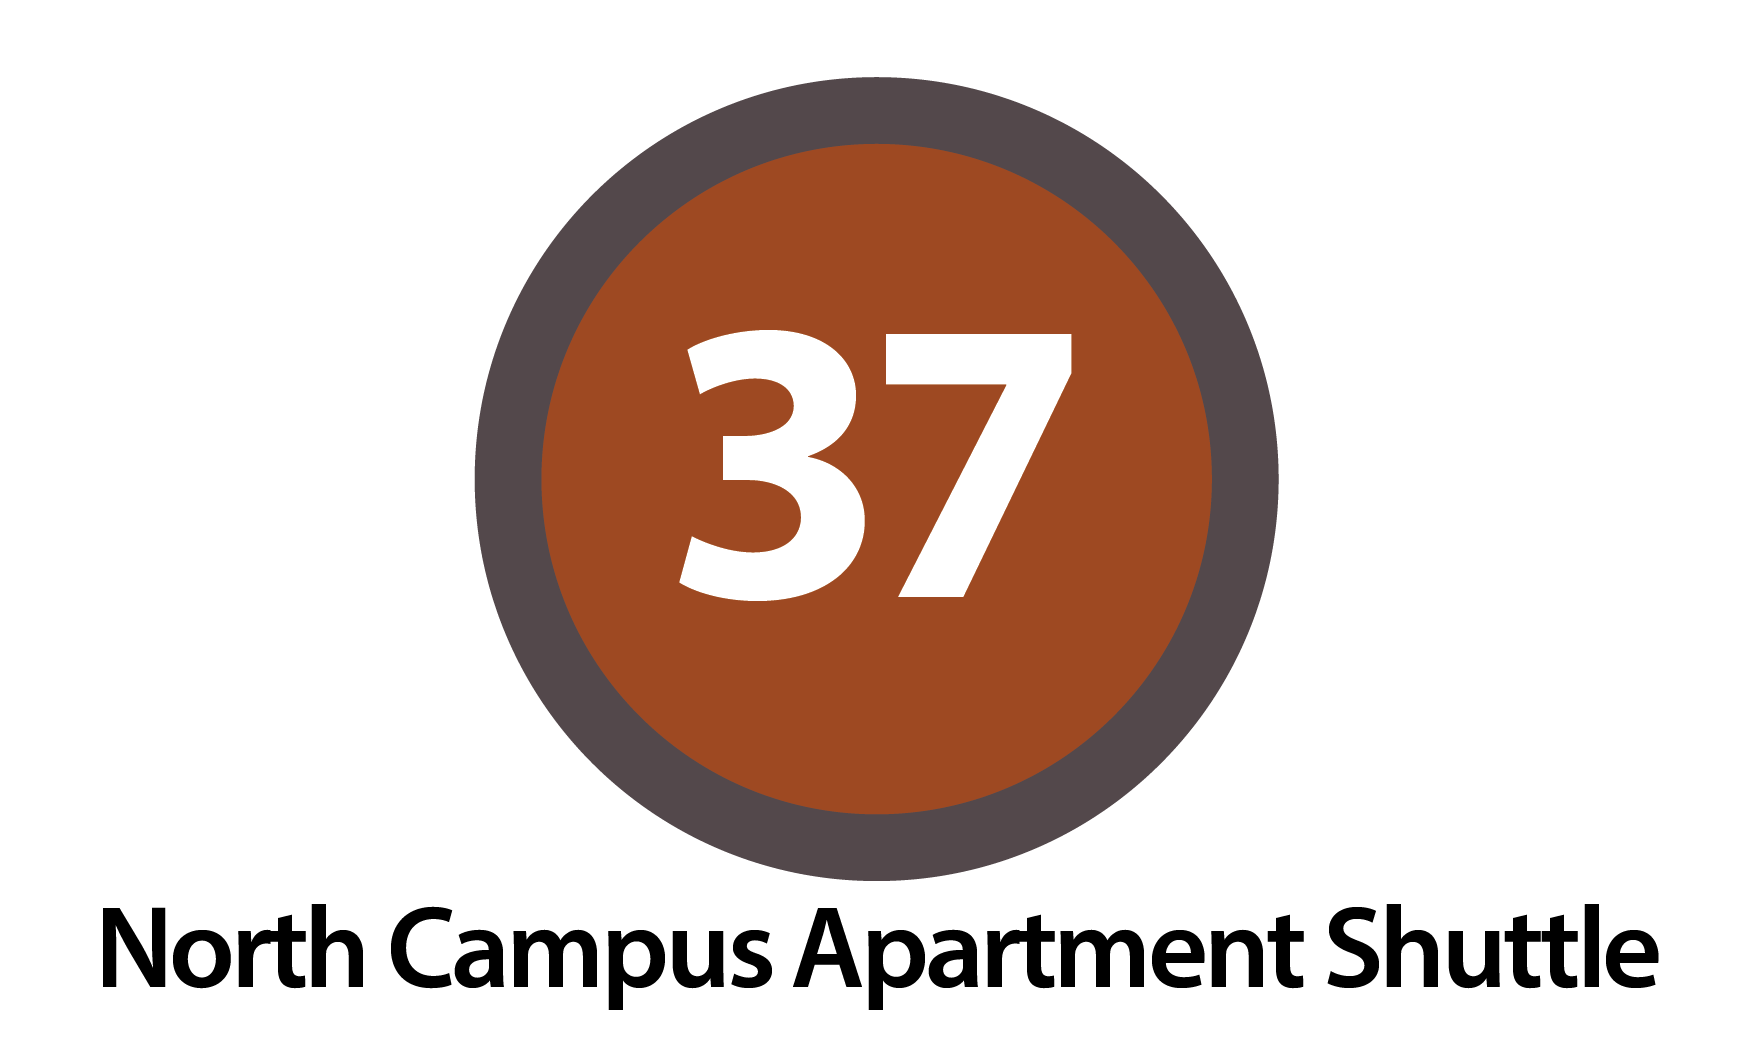 Route 37 button